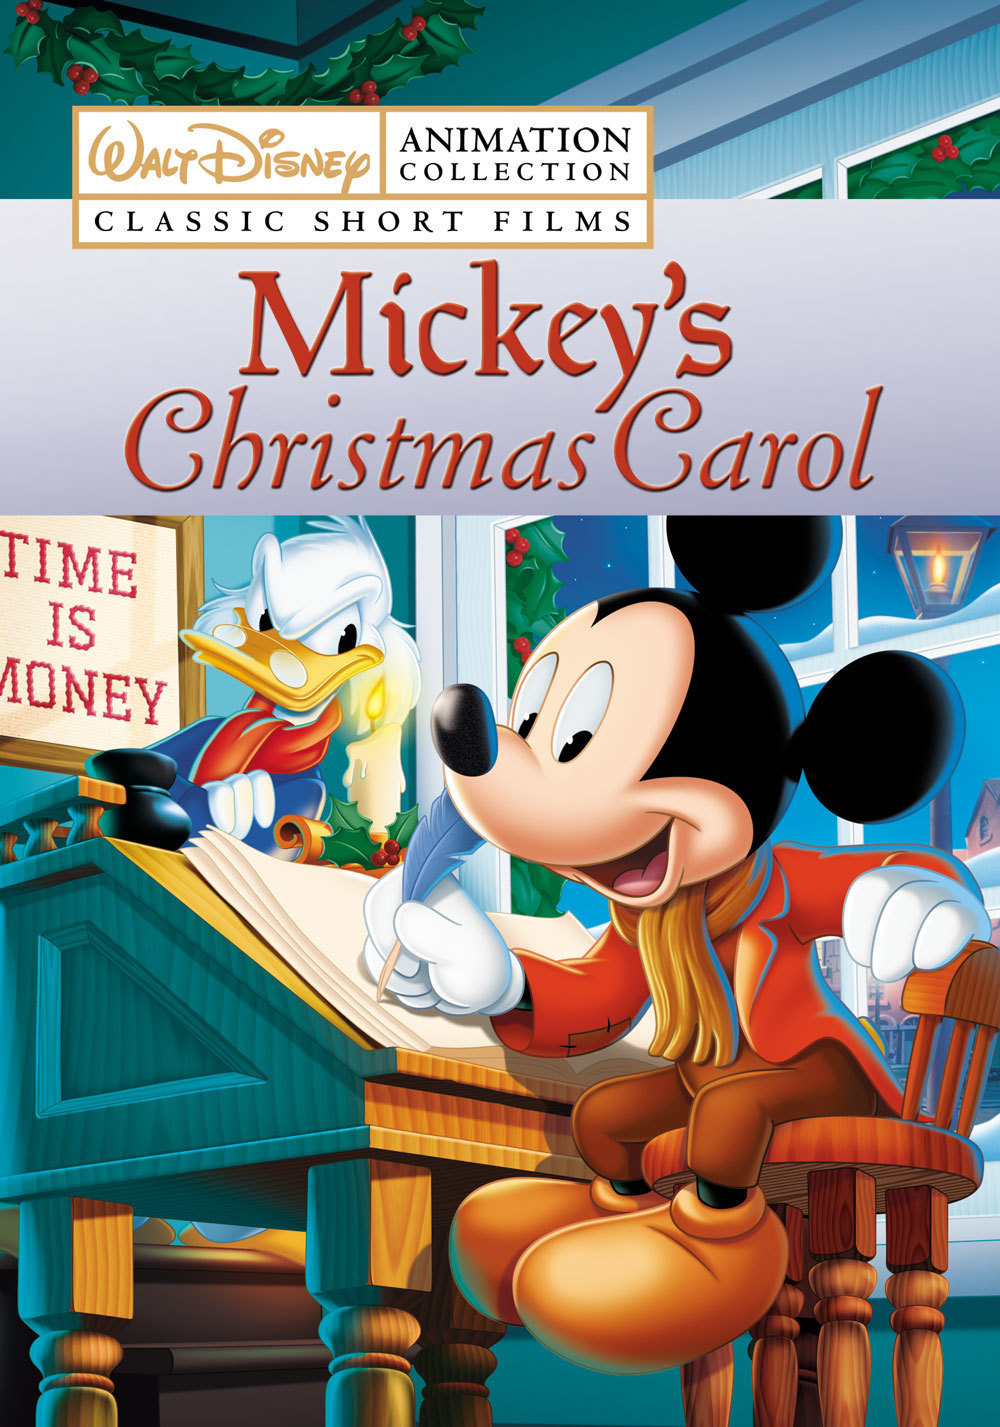 Crítica | O Conto de Natal do Mickey